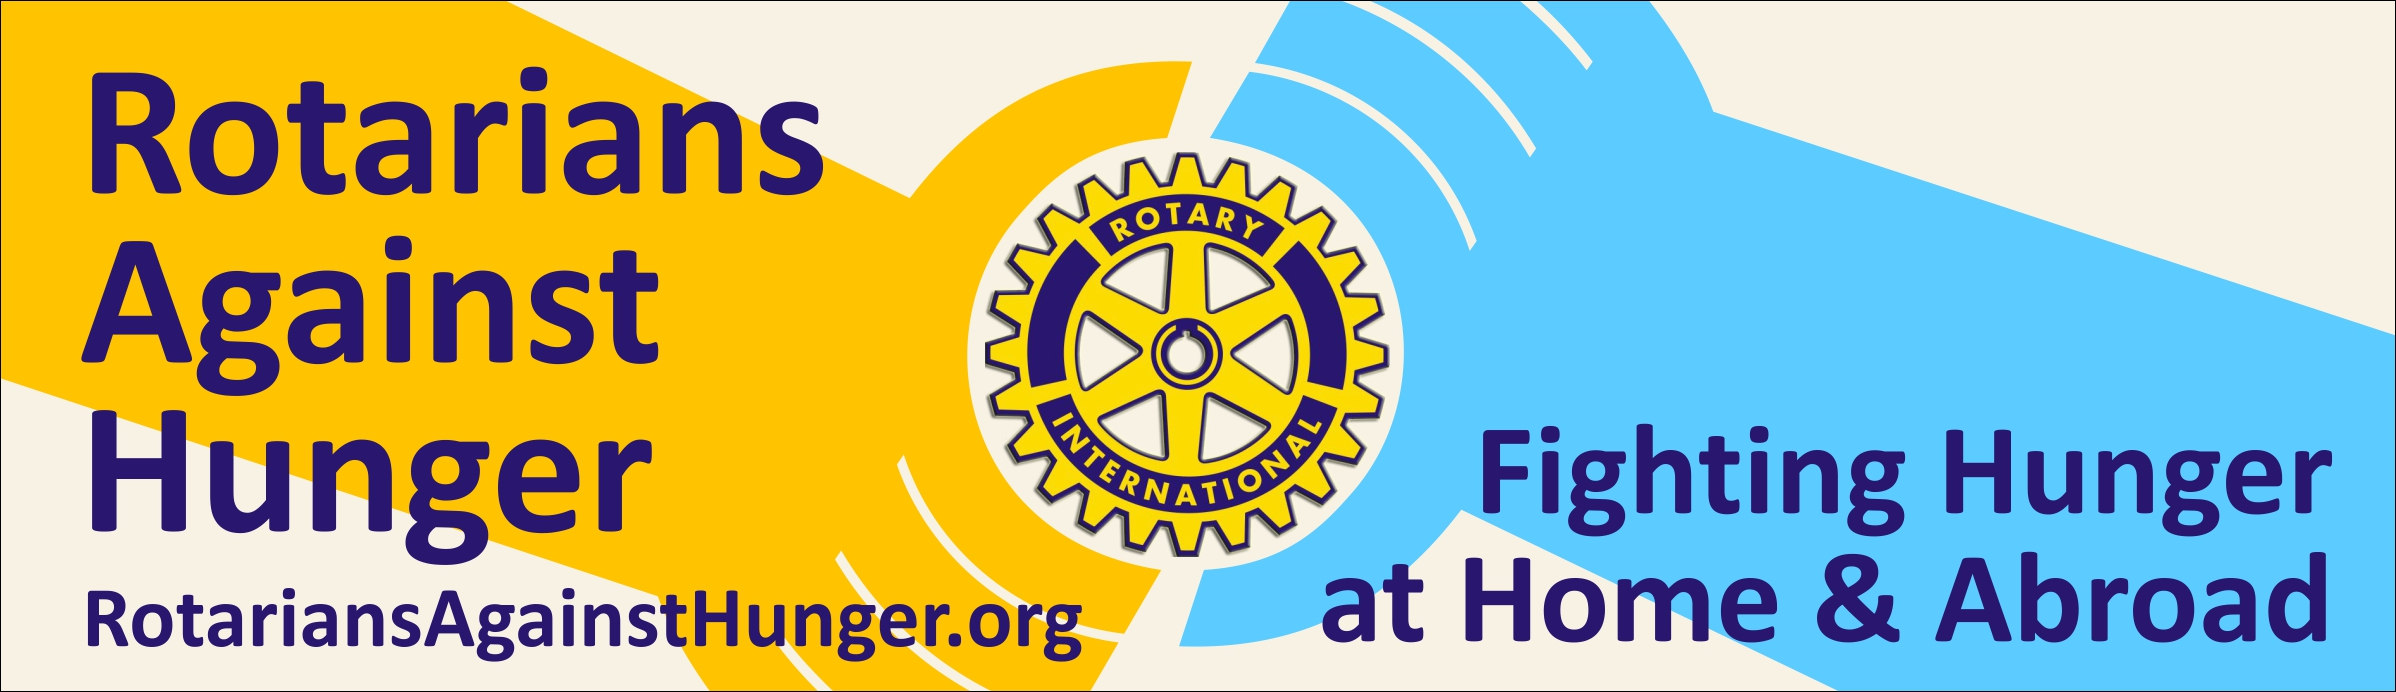 Rotarians Against Hunger